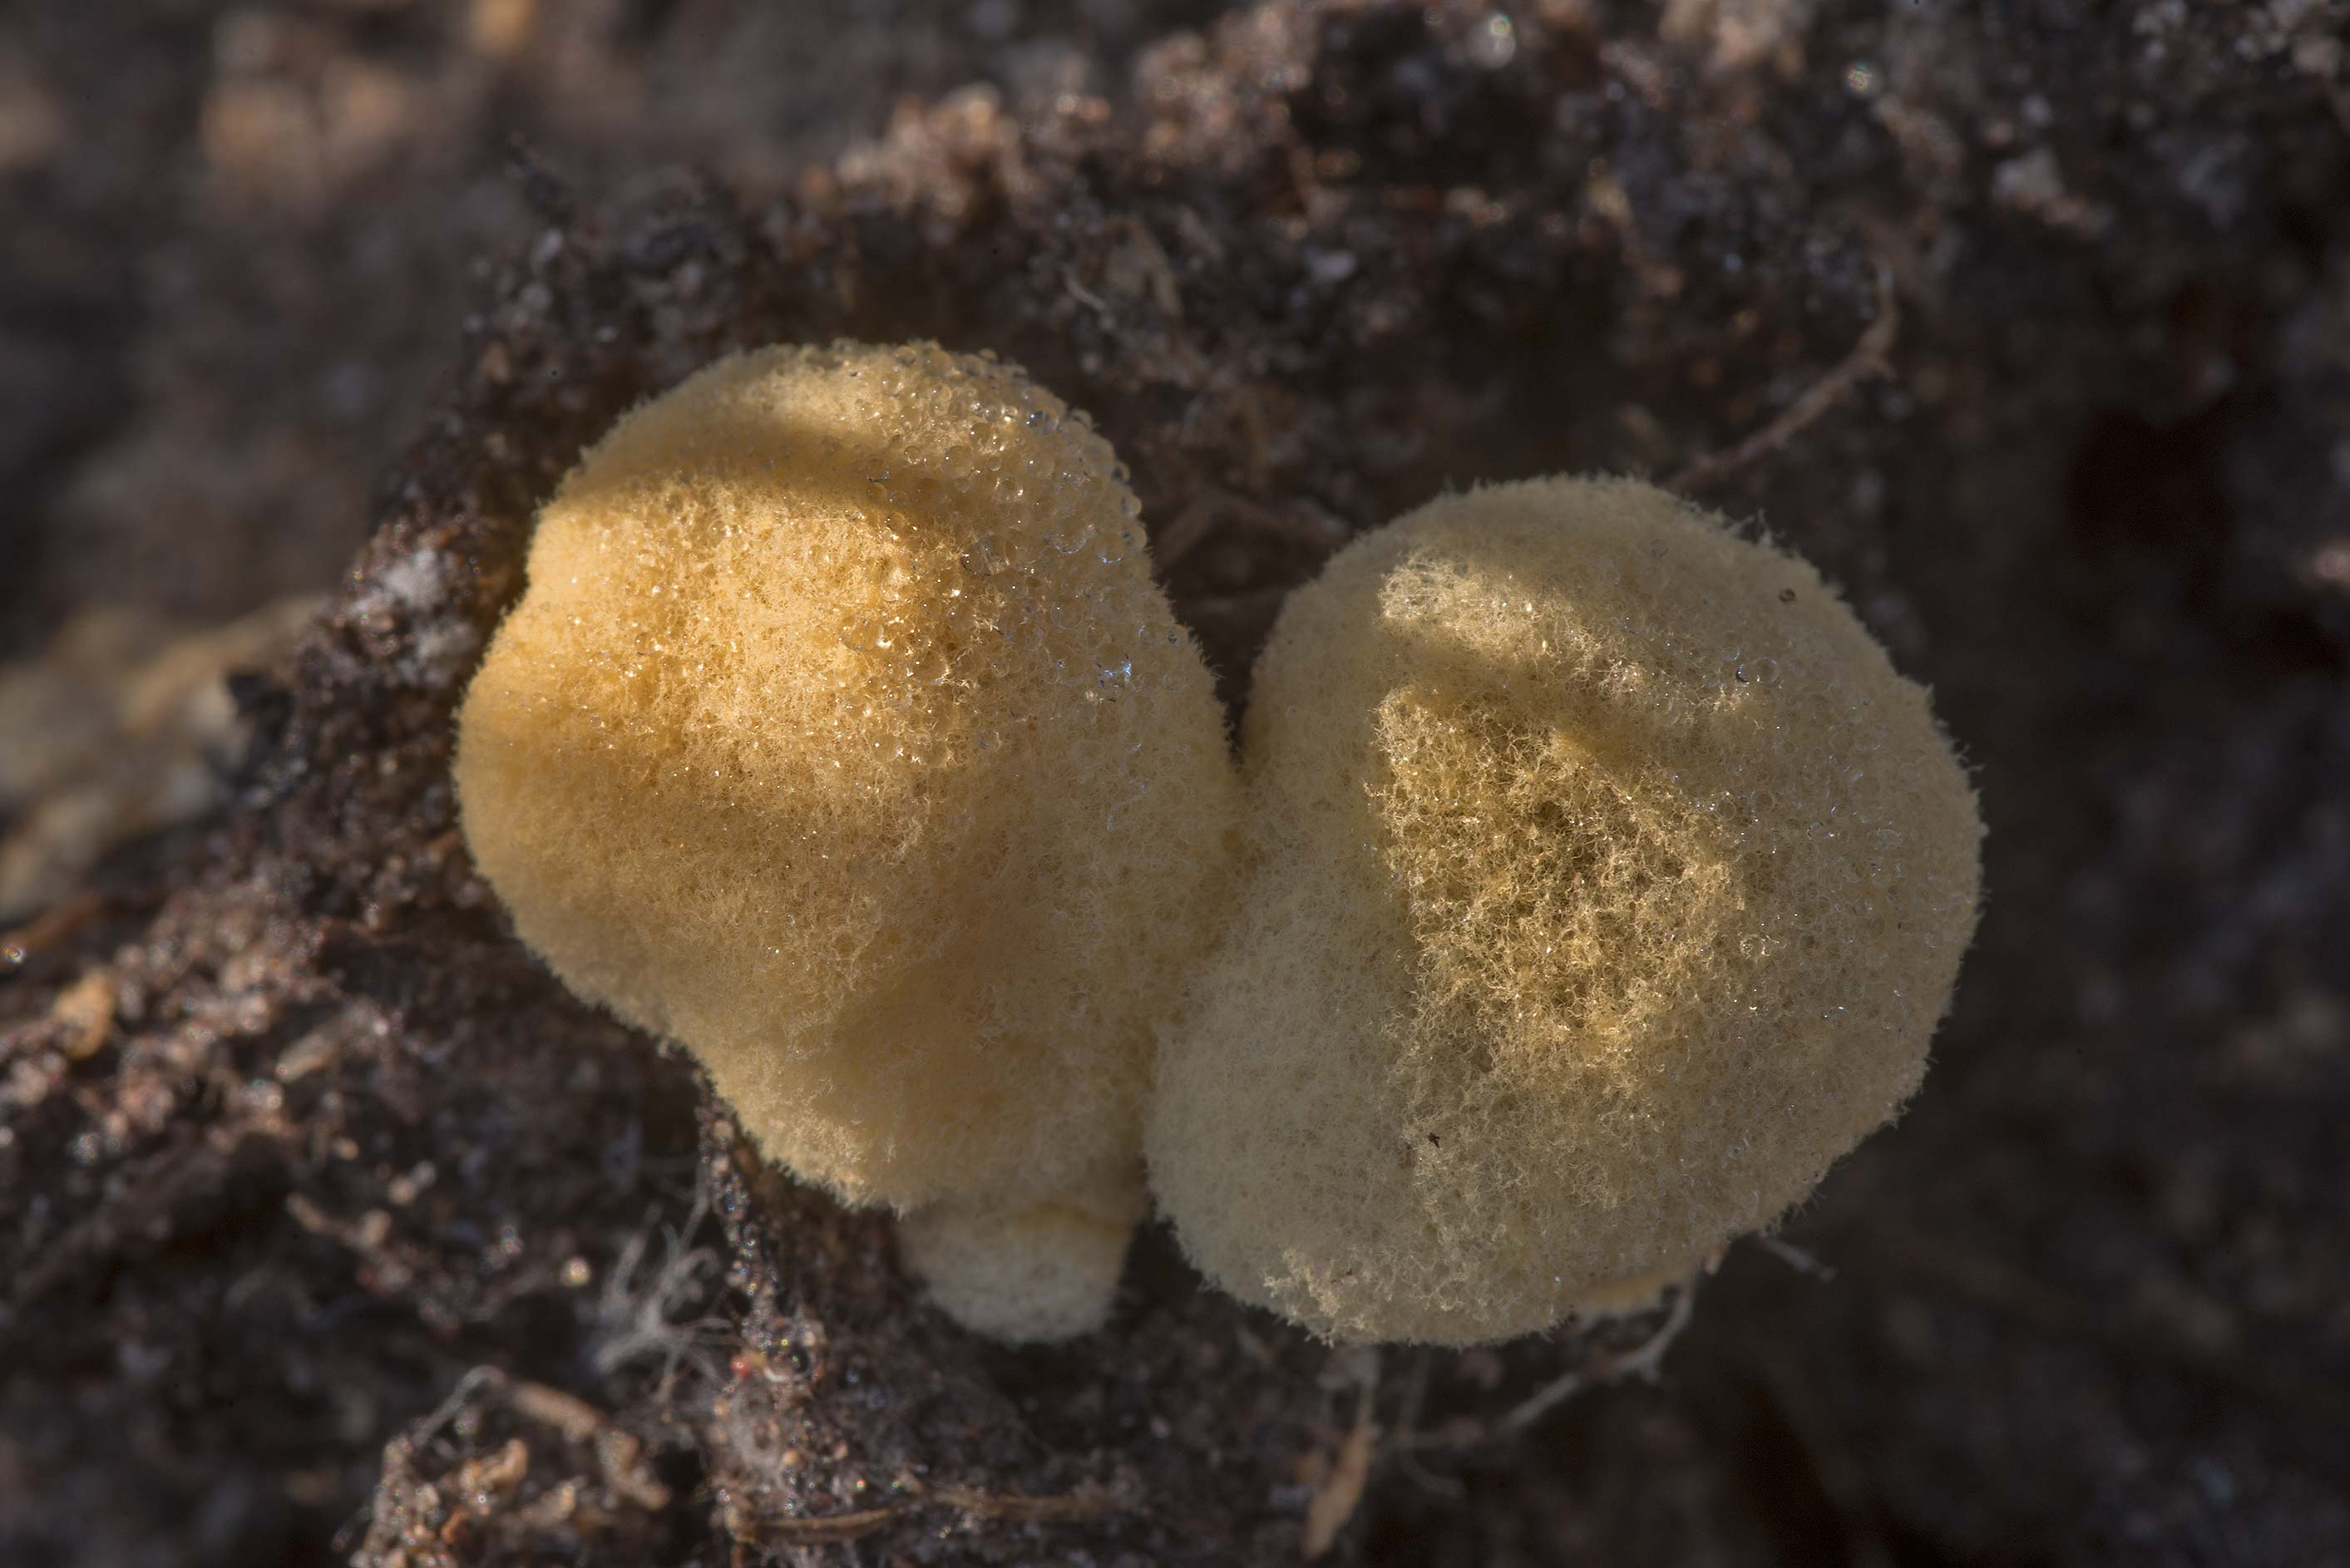 Yellow woolly surface of small gasteroid...in Sam Houston National Forest. Texas